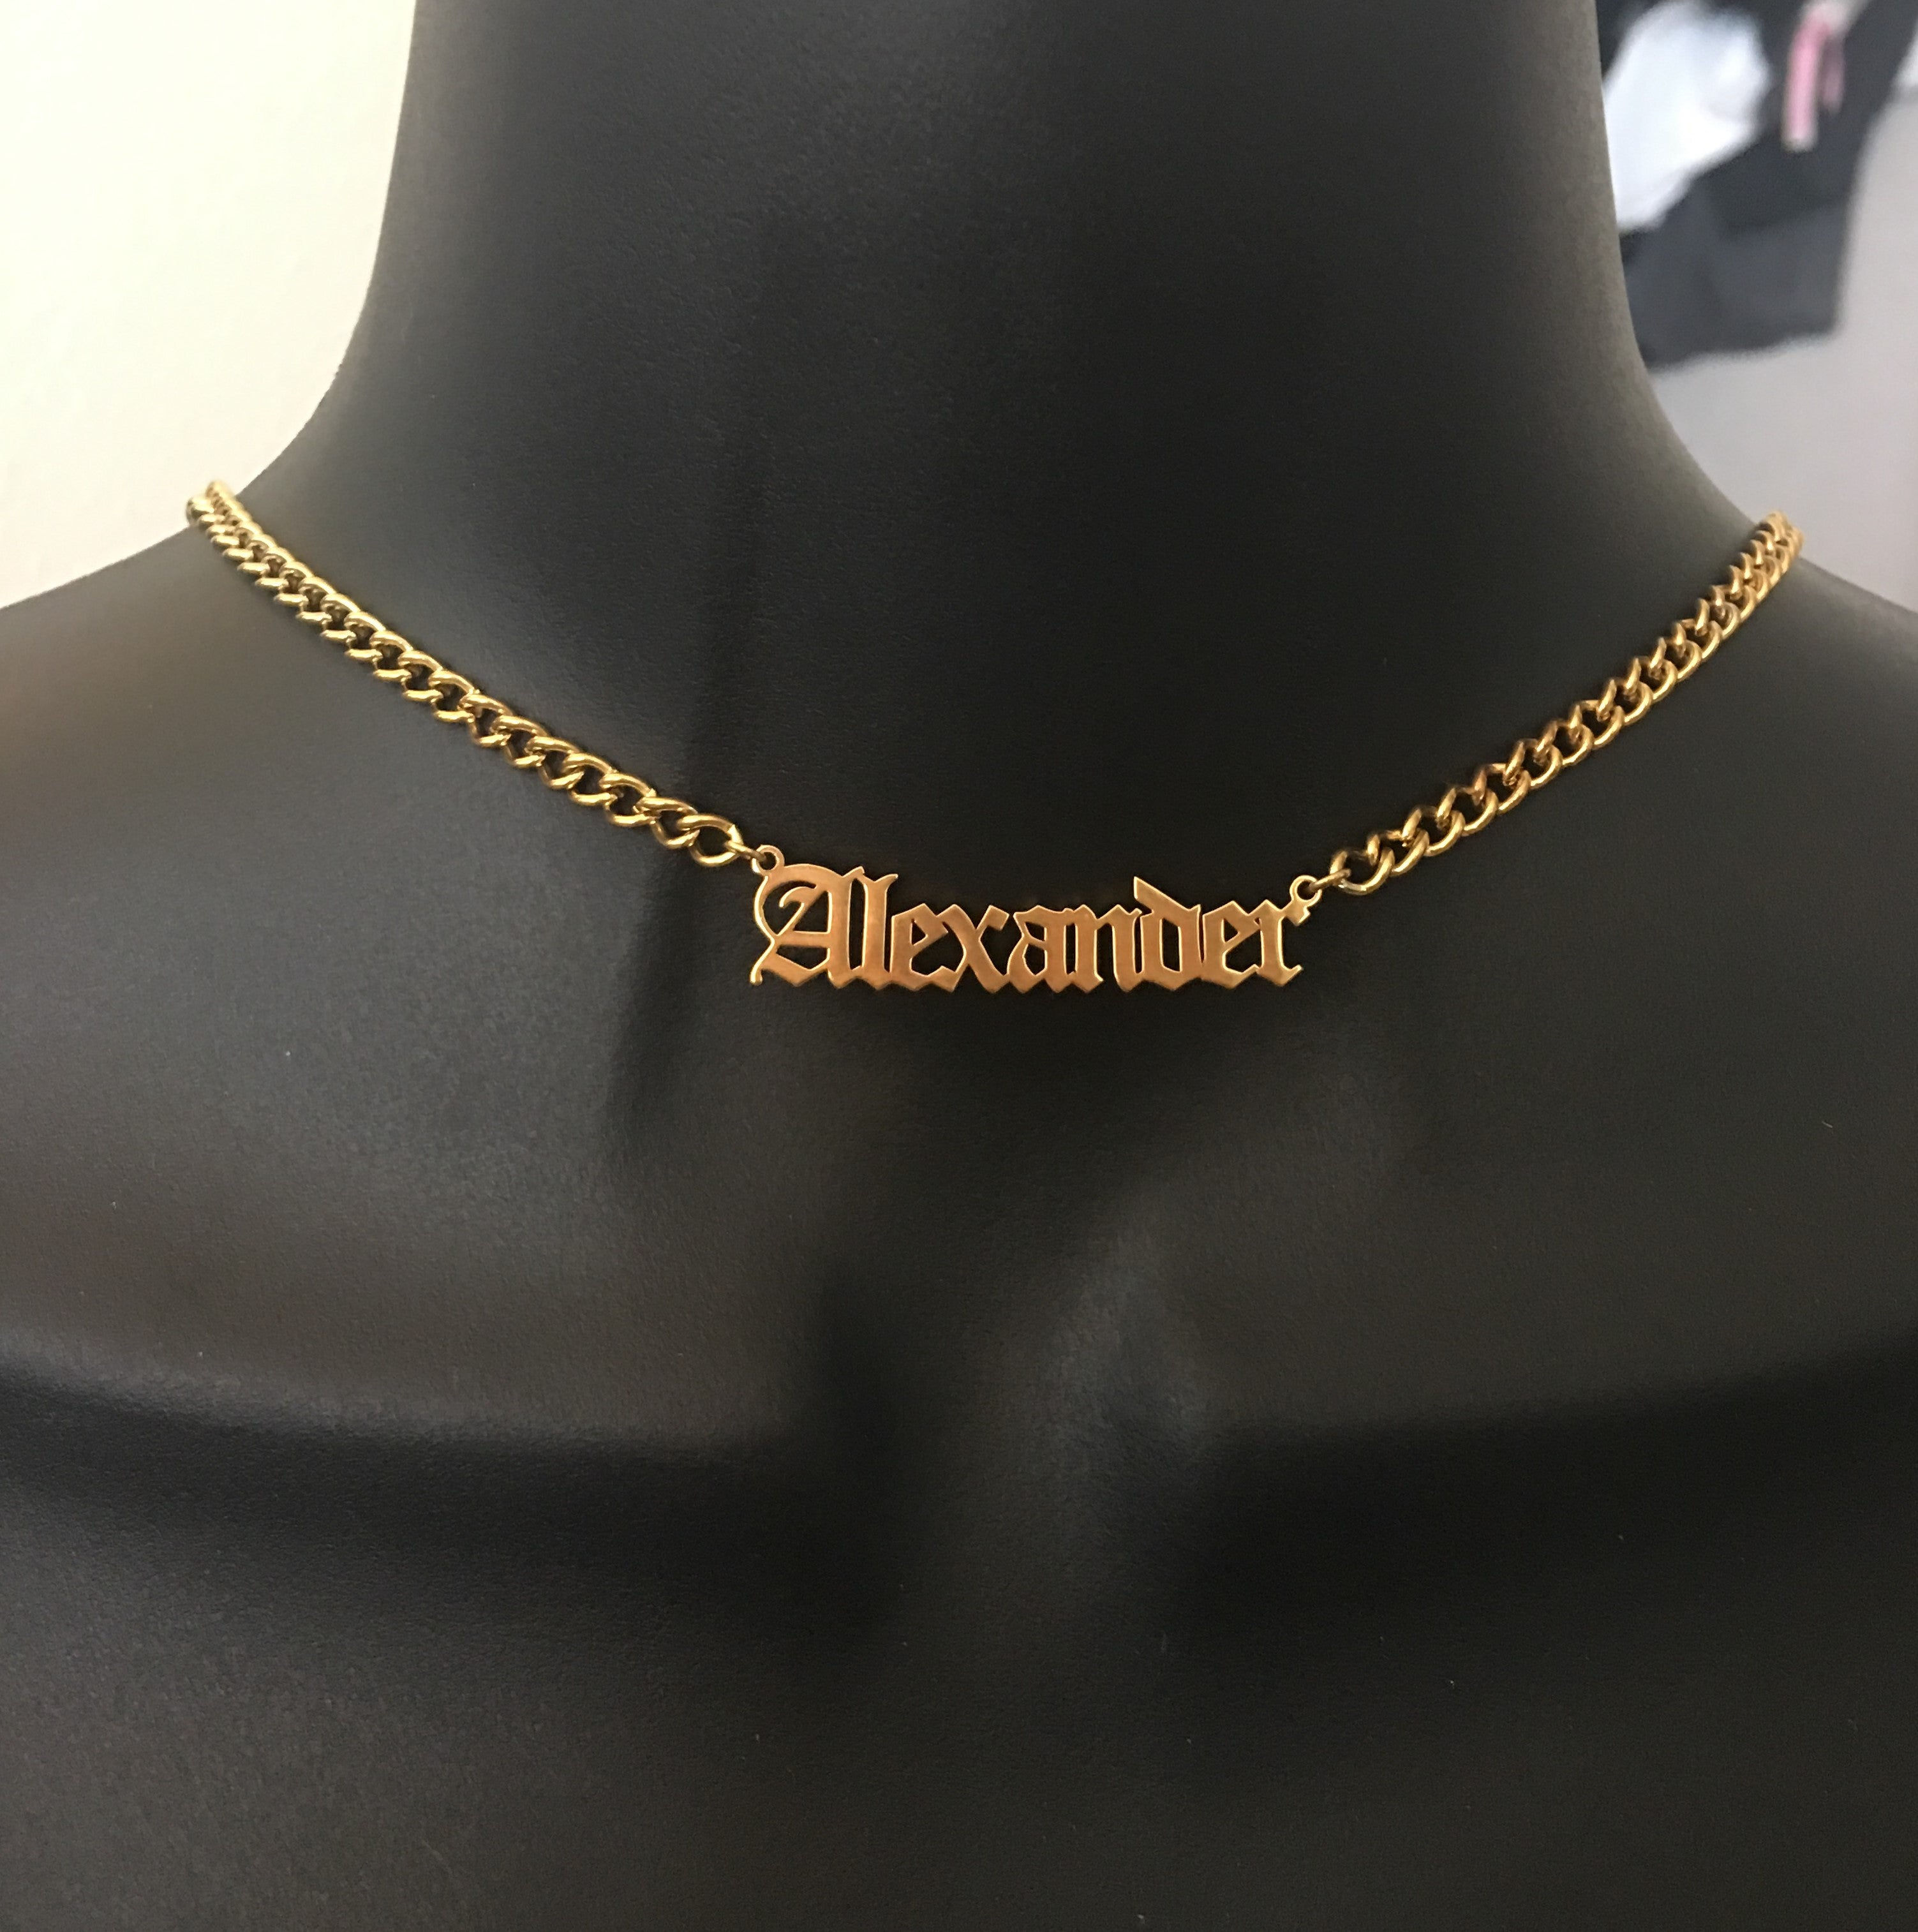 Personalized, Old English, choker style name necklace